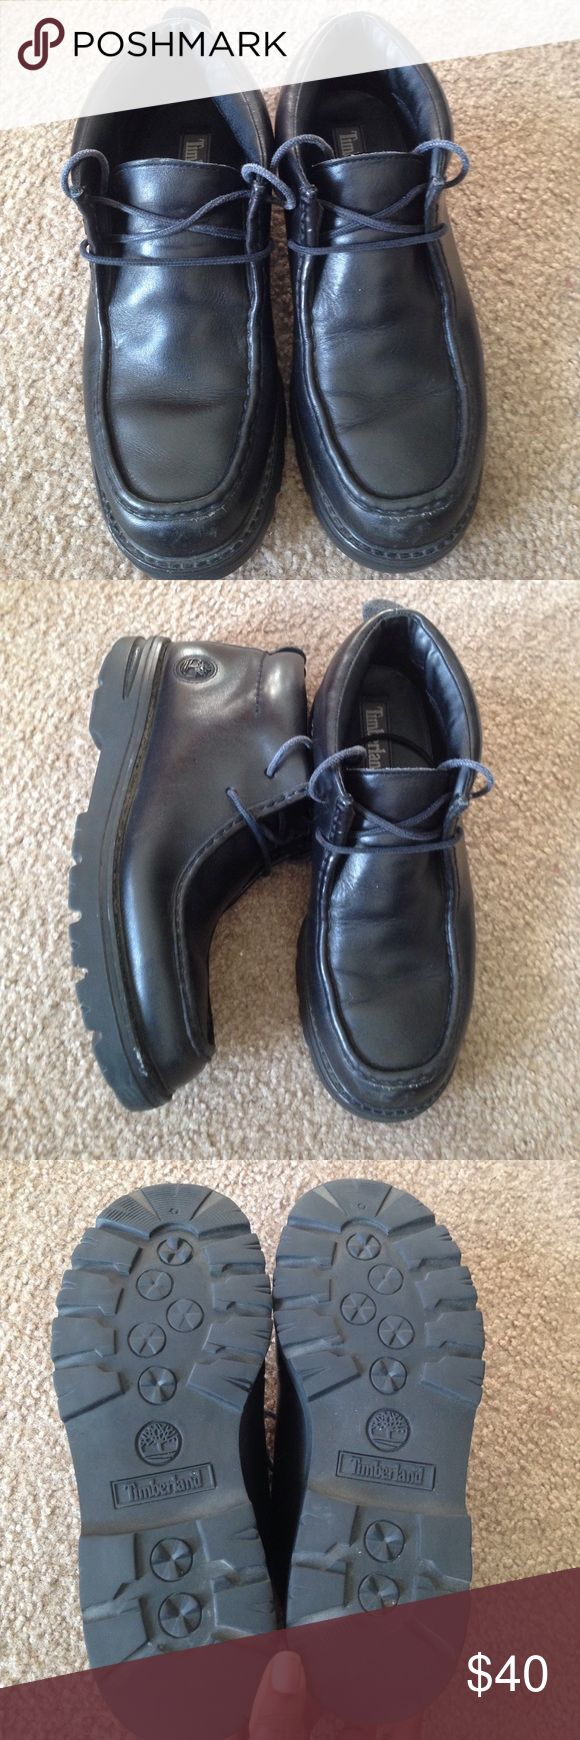 Used Men's Timberland boots Black leather Timberland boots - used but in good condition (slight toe scuff - pic #4) Timberland Shoes Boots